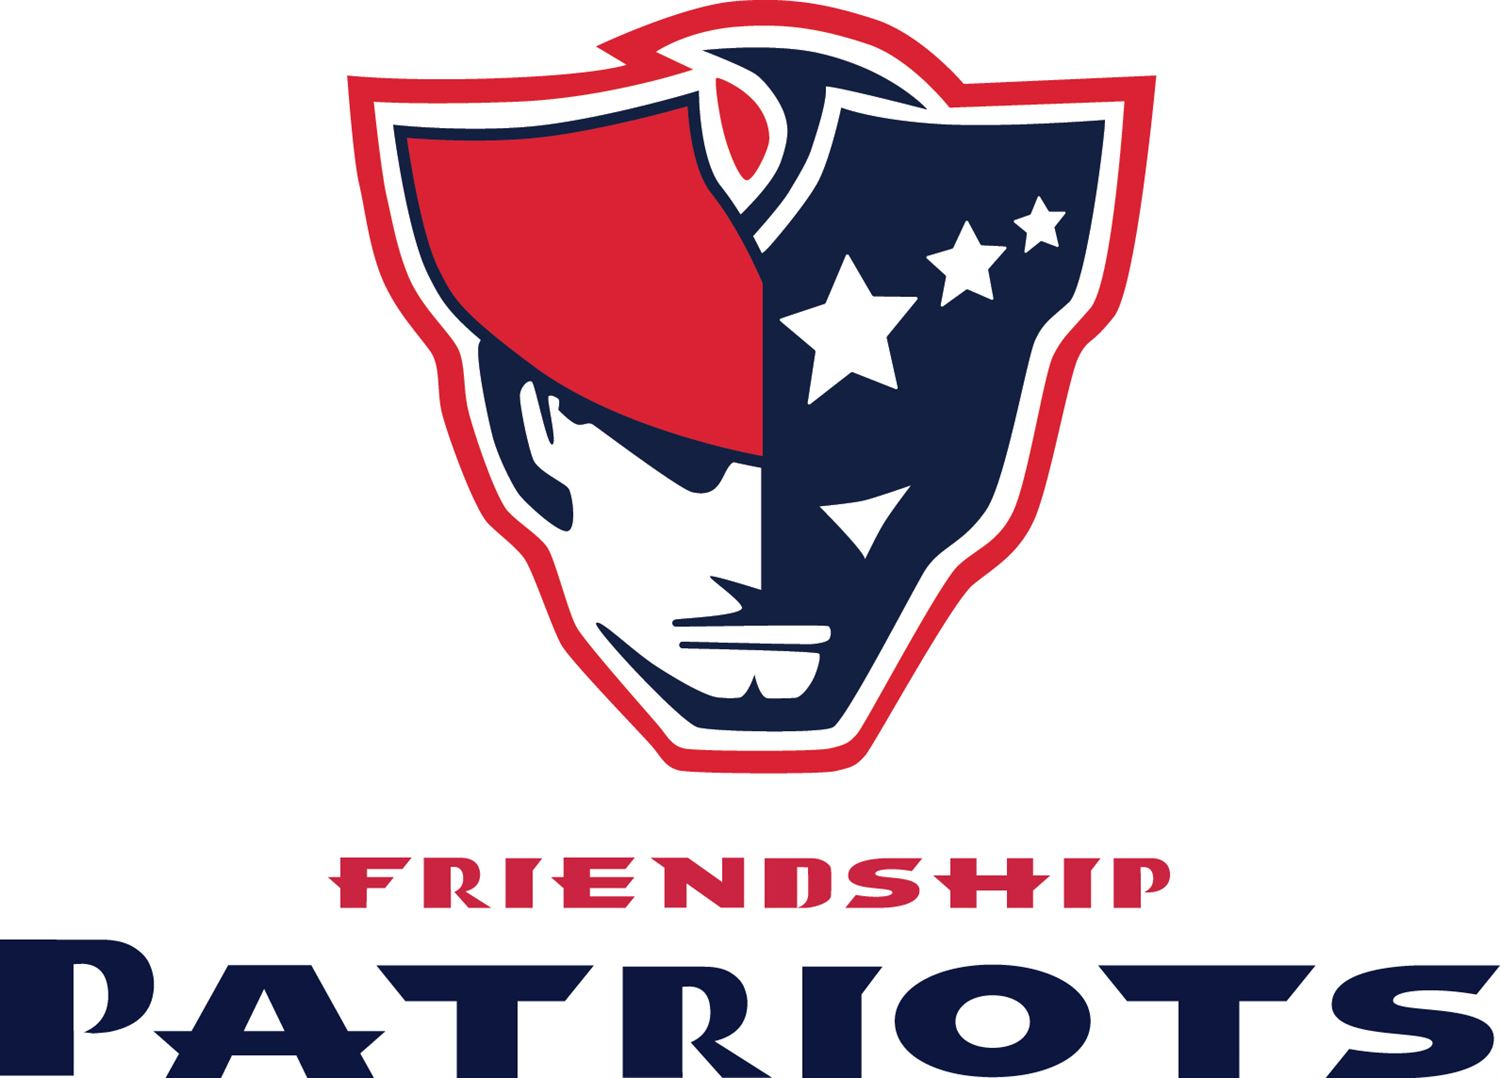 Friendship Patriots Youth Football - Patriots